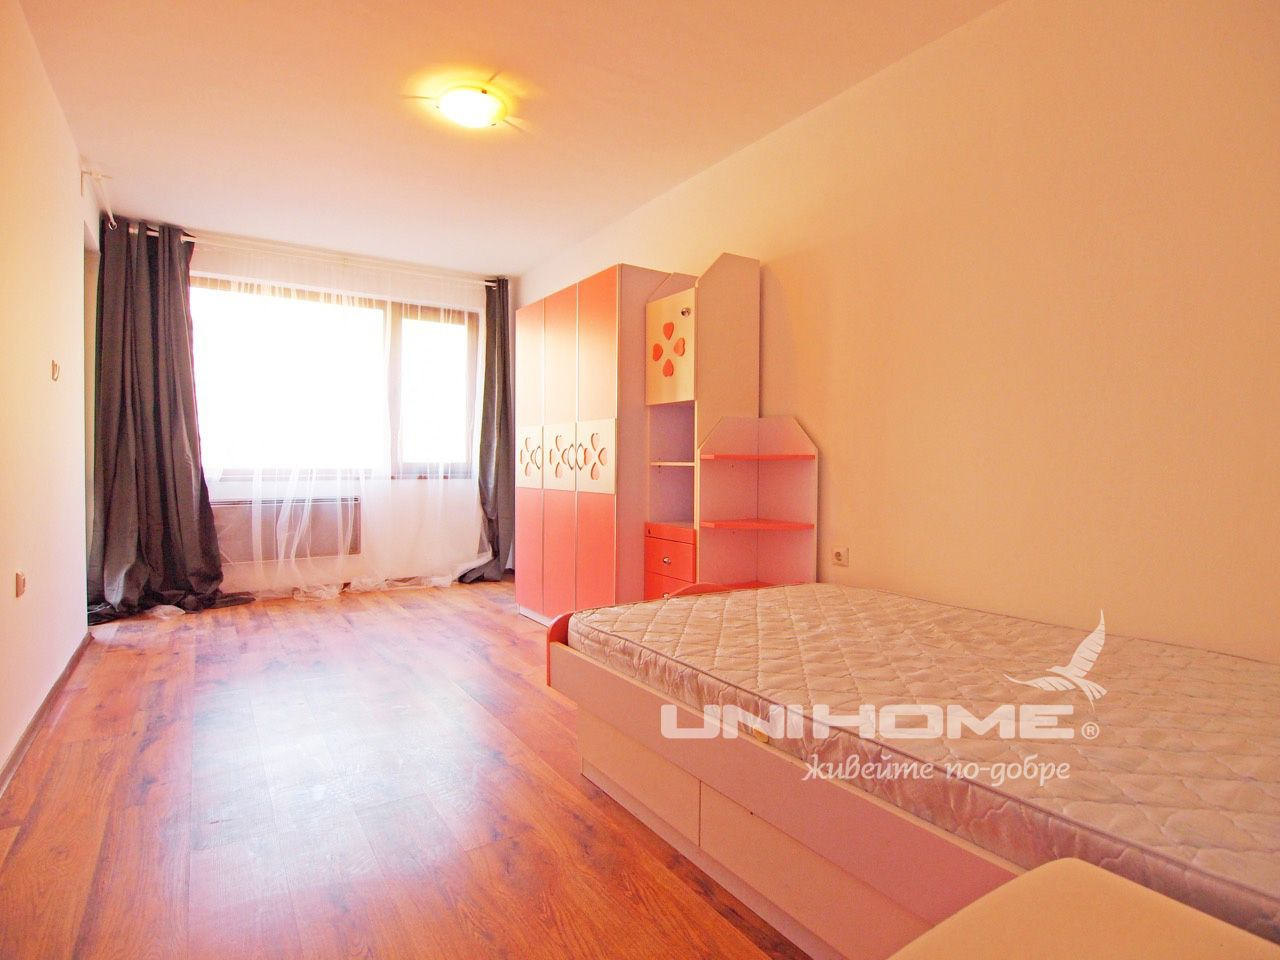 https://www.unihome.bg/medias/properties_for_rent/medium/367/mesta42-14.jpg